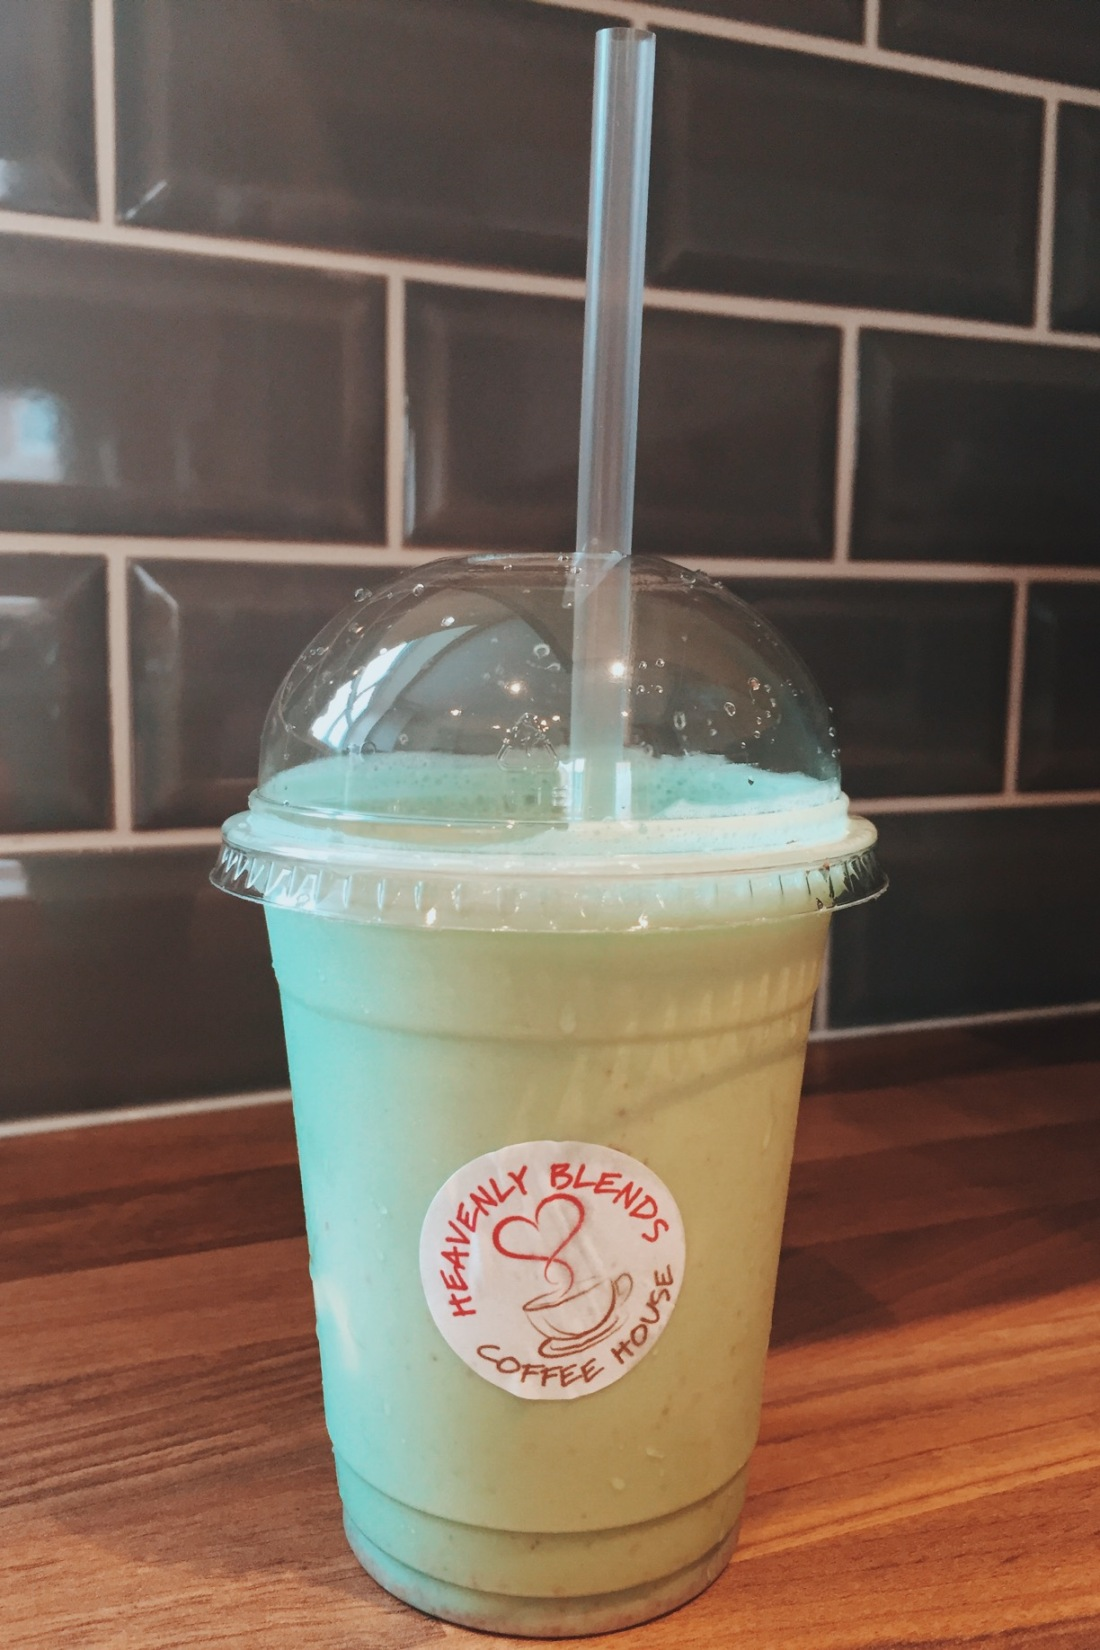 Heavenly Blends Mint Milkshake Milton Keynes